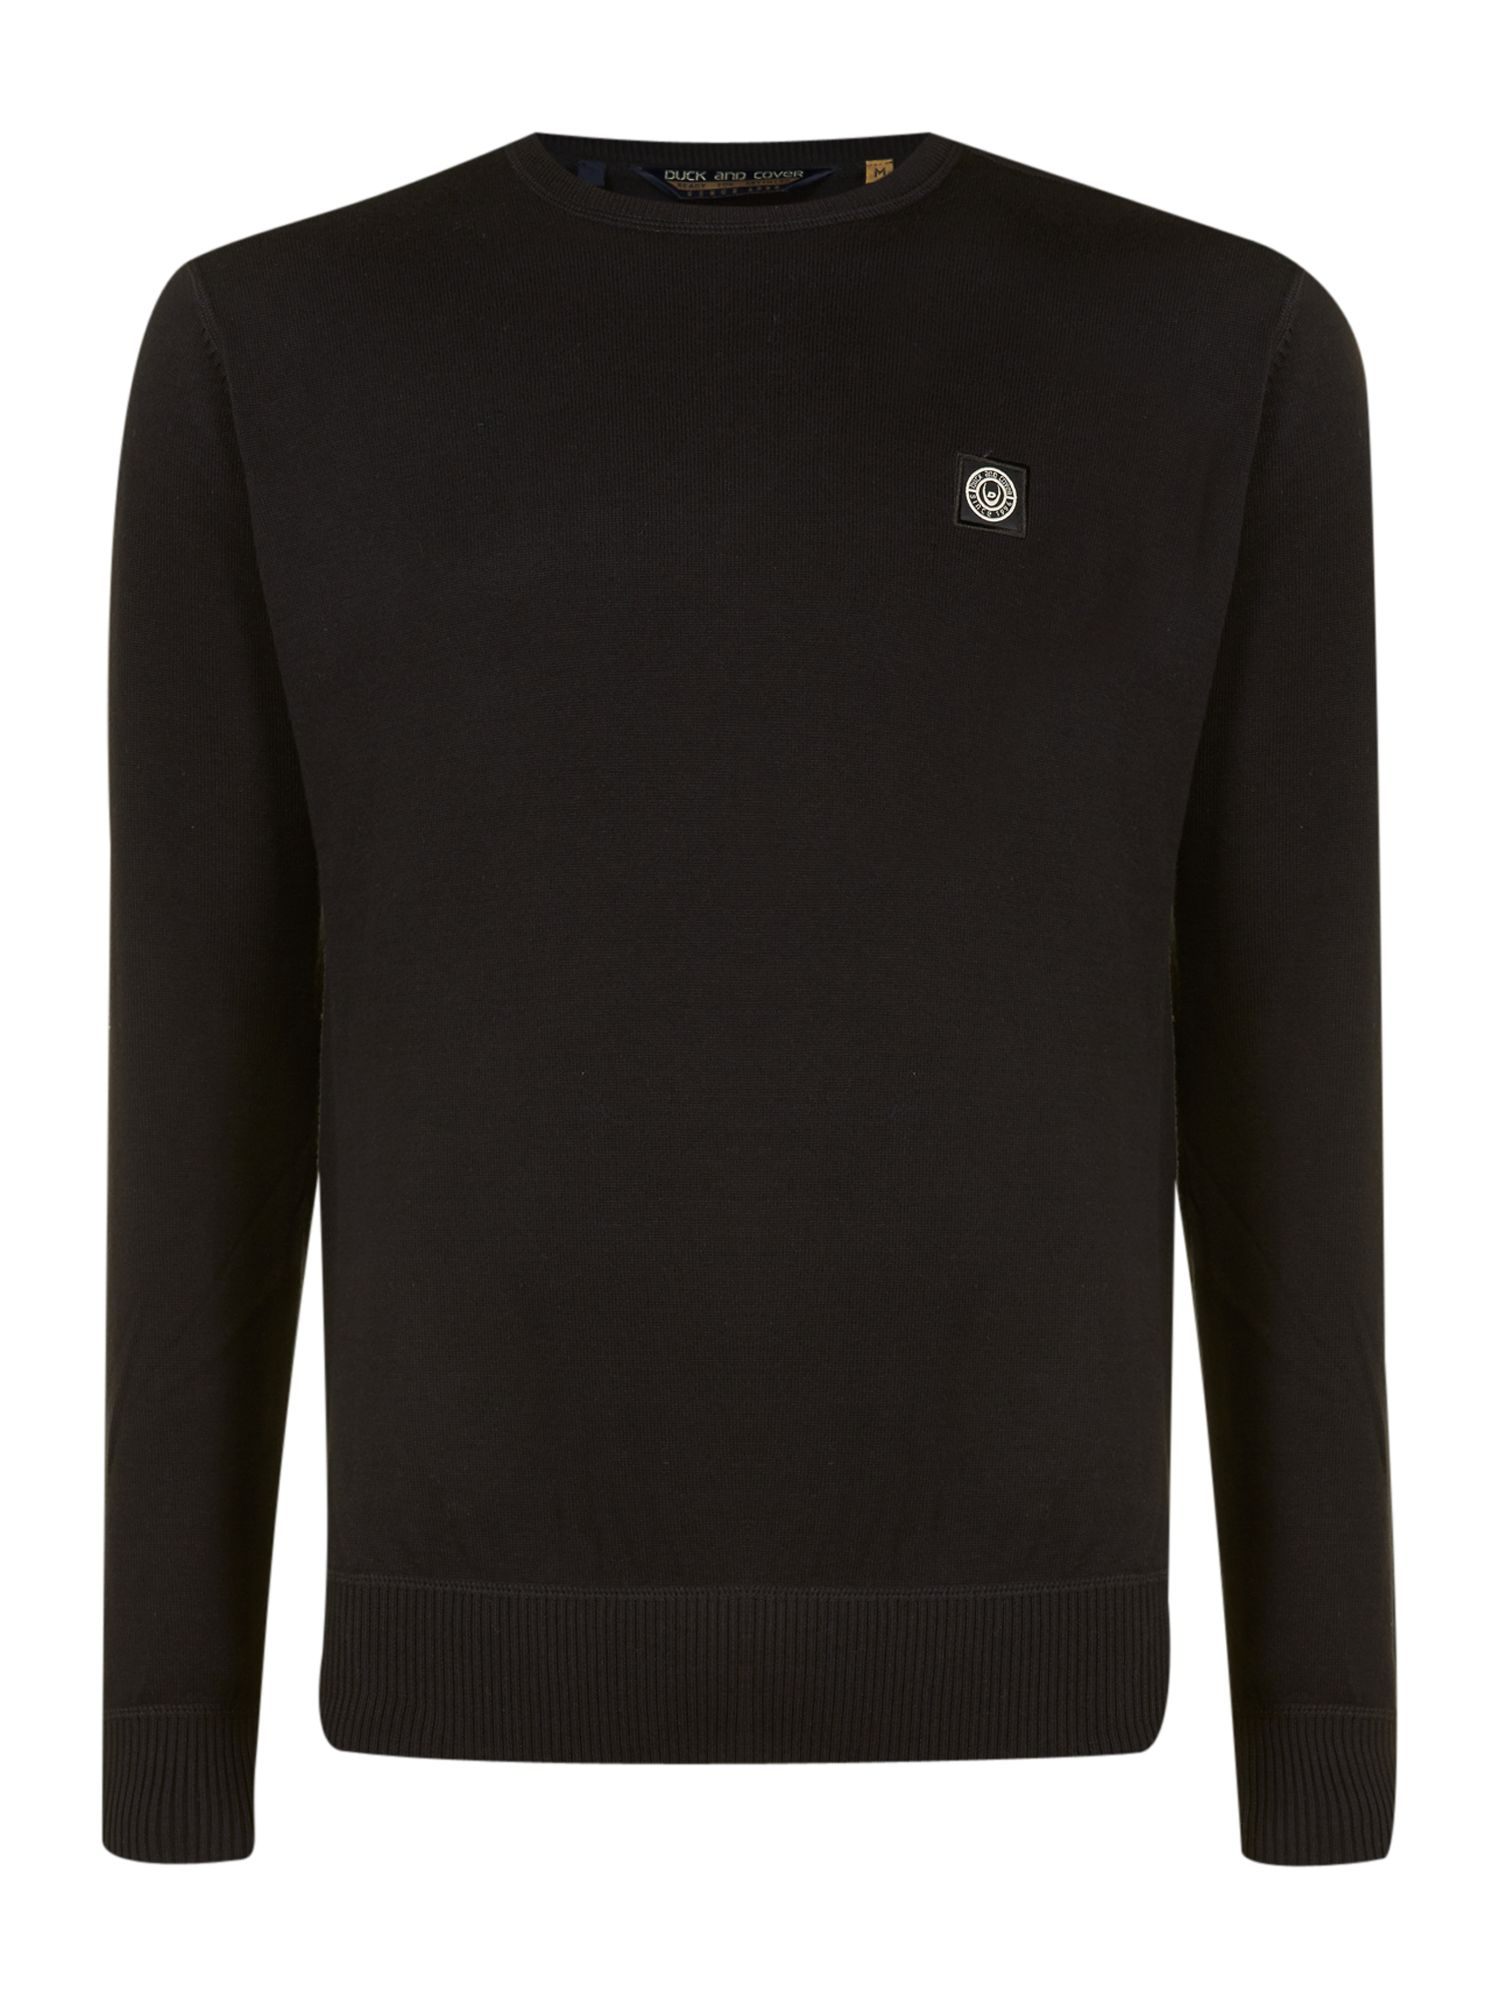 100% cotton fine guage jumper